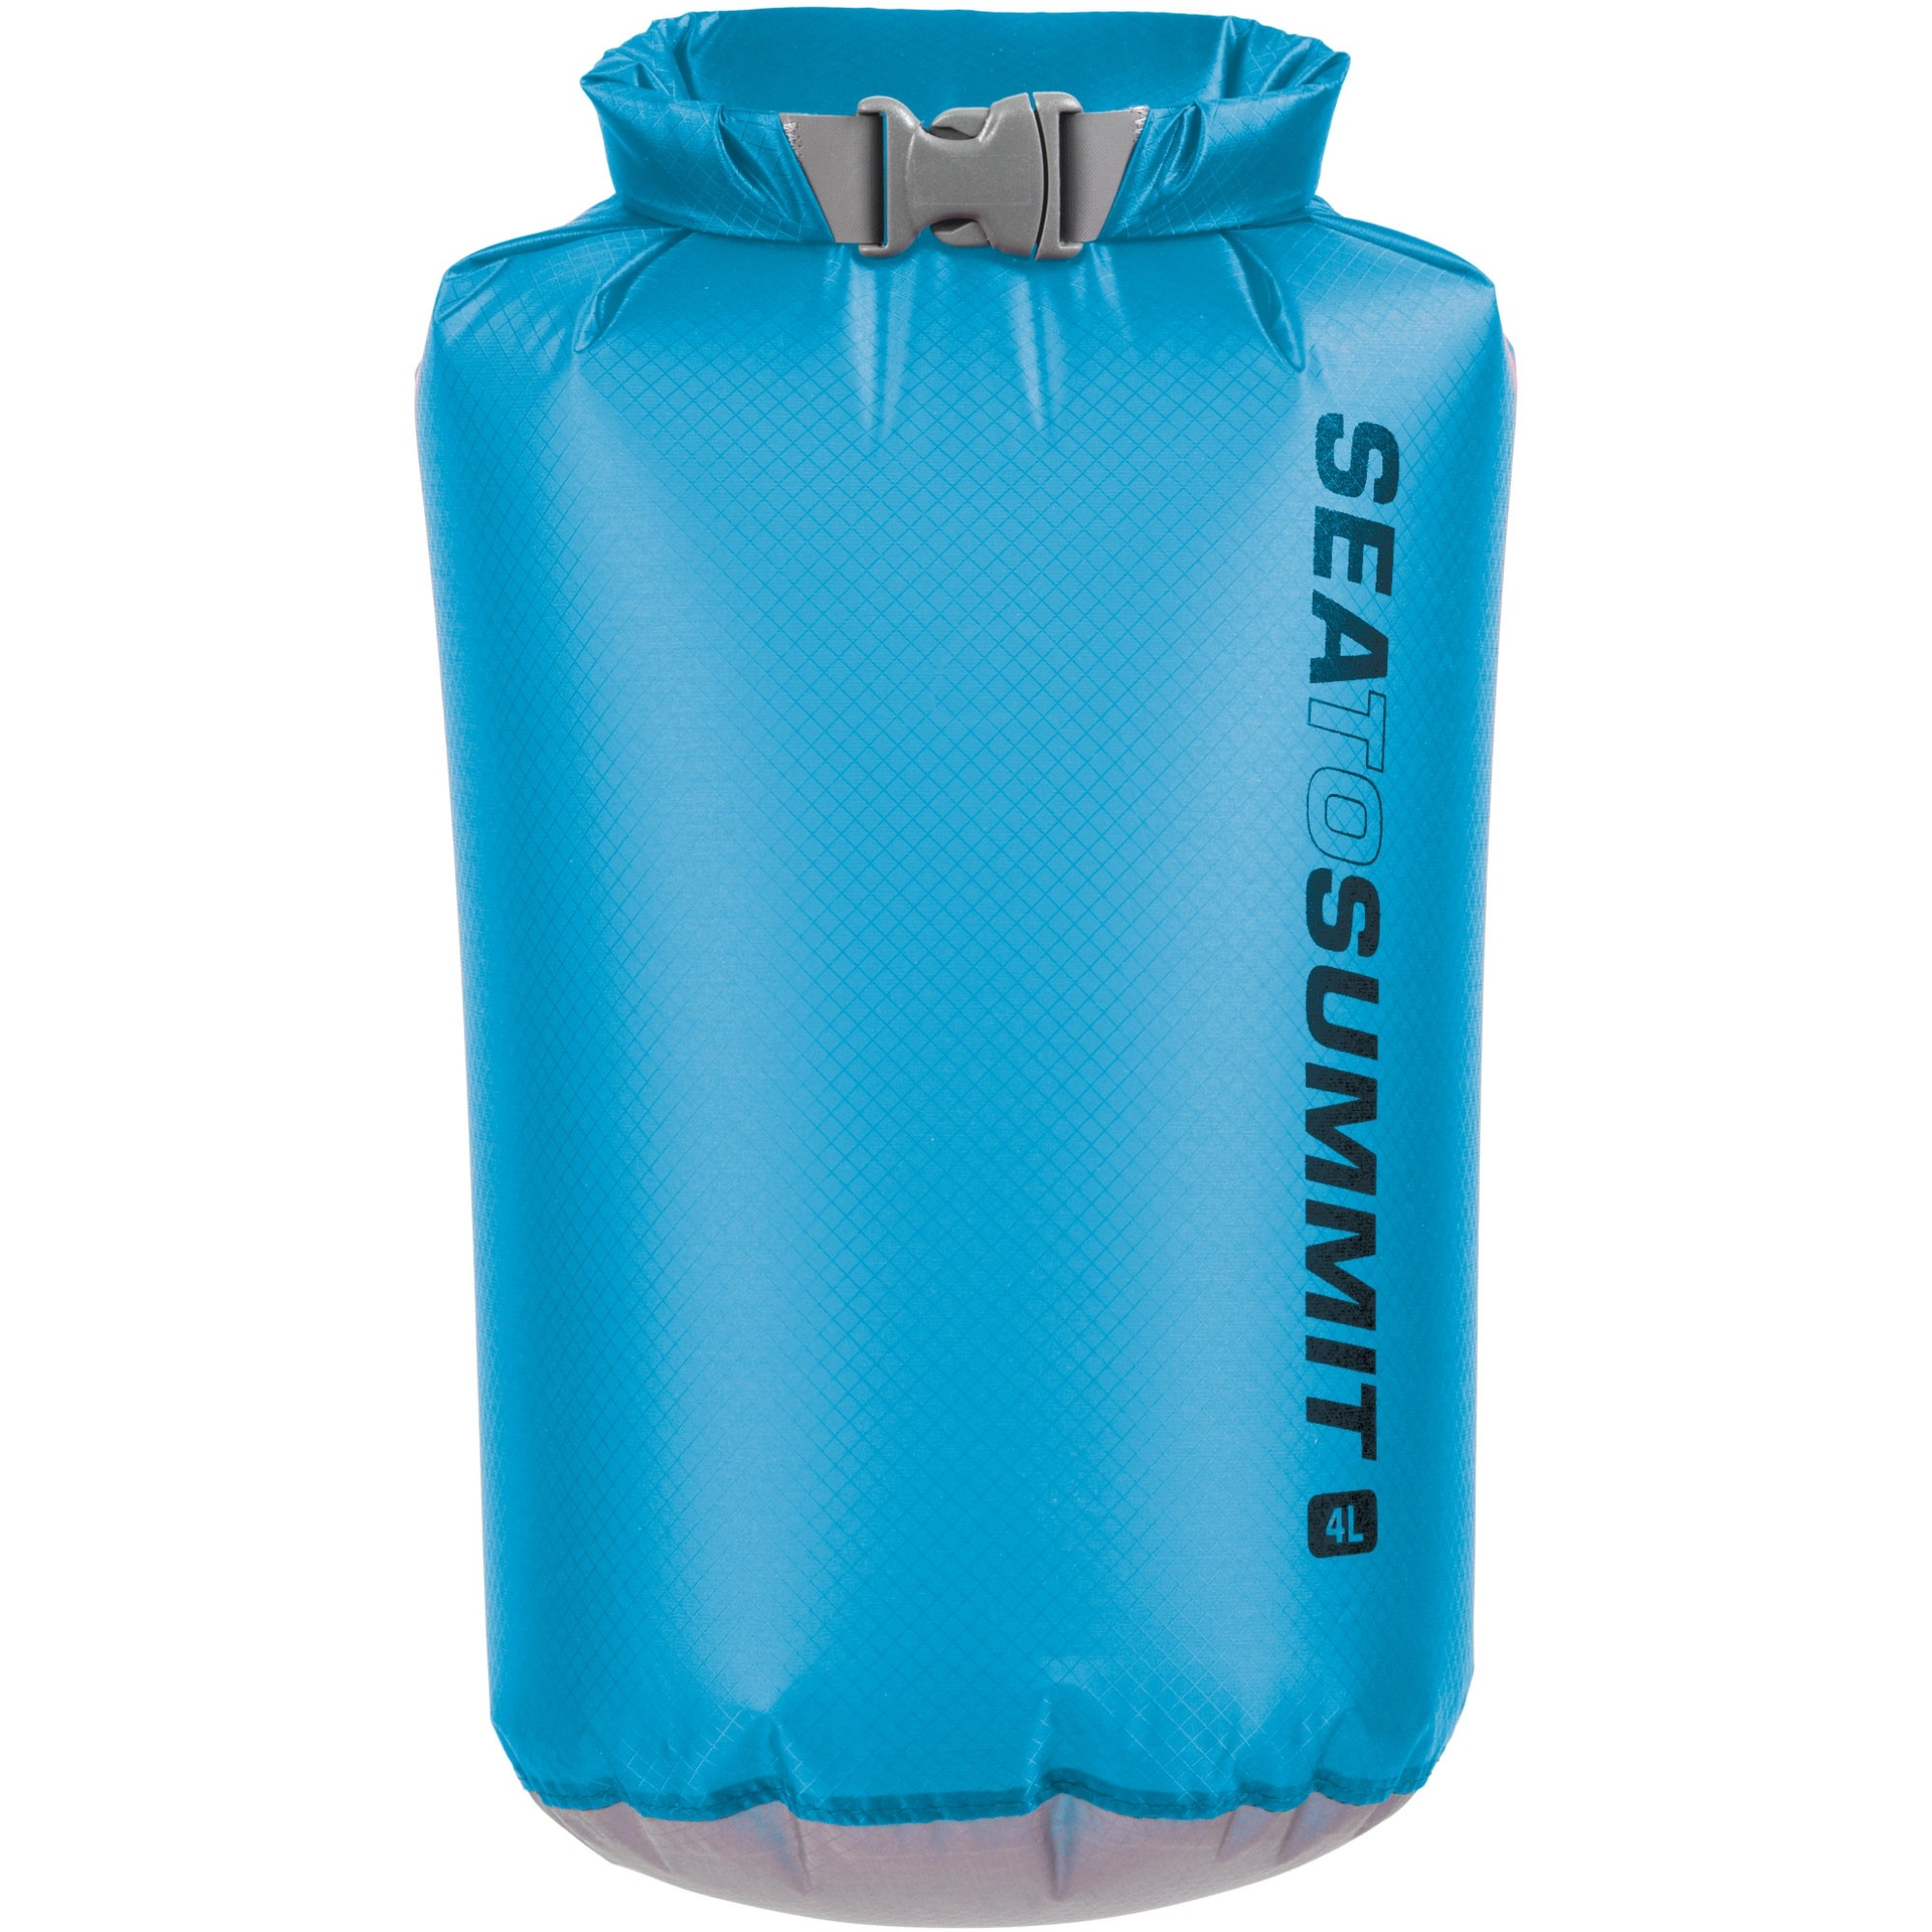 Sea to Summit Ultra-Sil Dry Sacks - Blue 4 litre